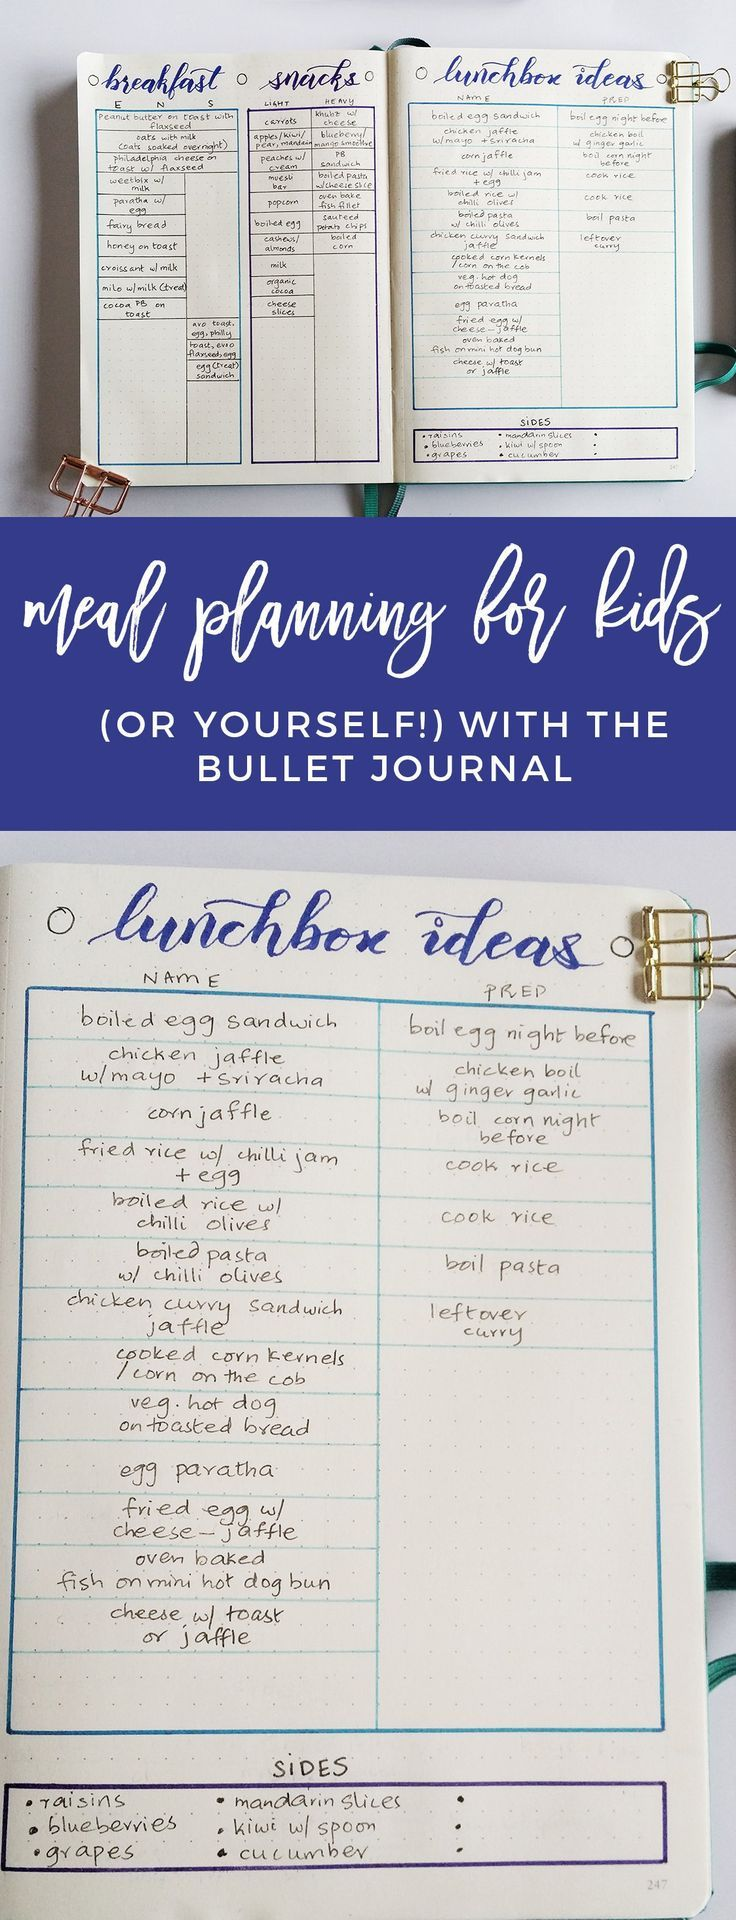 Bullet Journal Meal Planning Spread for Moms is part of Organization Journal Meal Planning - Whether you are a Mom or not, odds are you have a lot of chaos to manage  This helps me cut back by bullet journal meal planning for my kids (and me)!